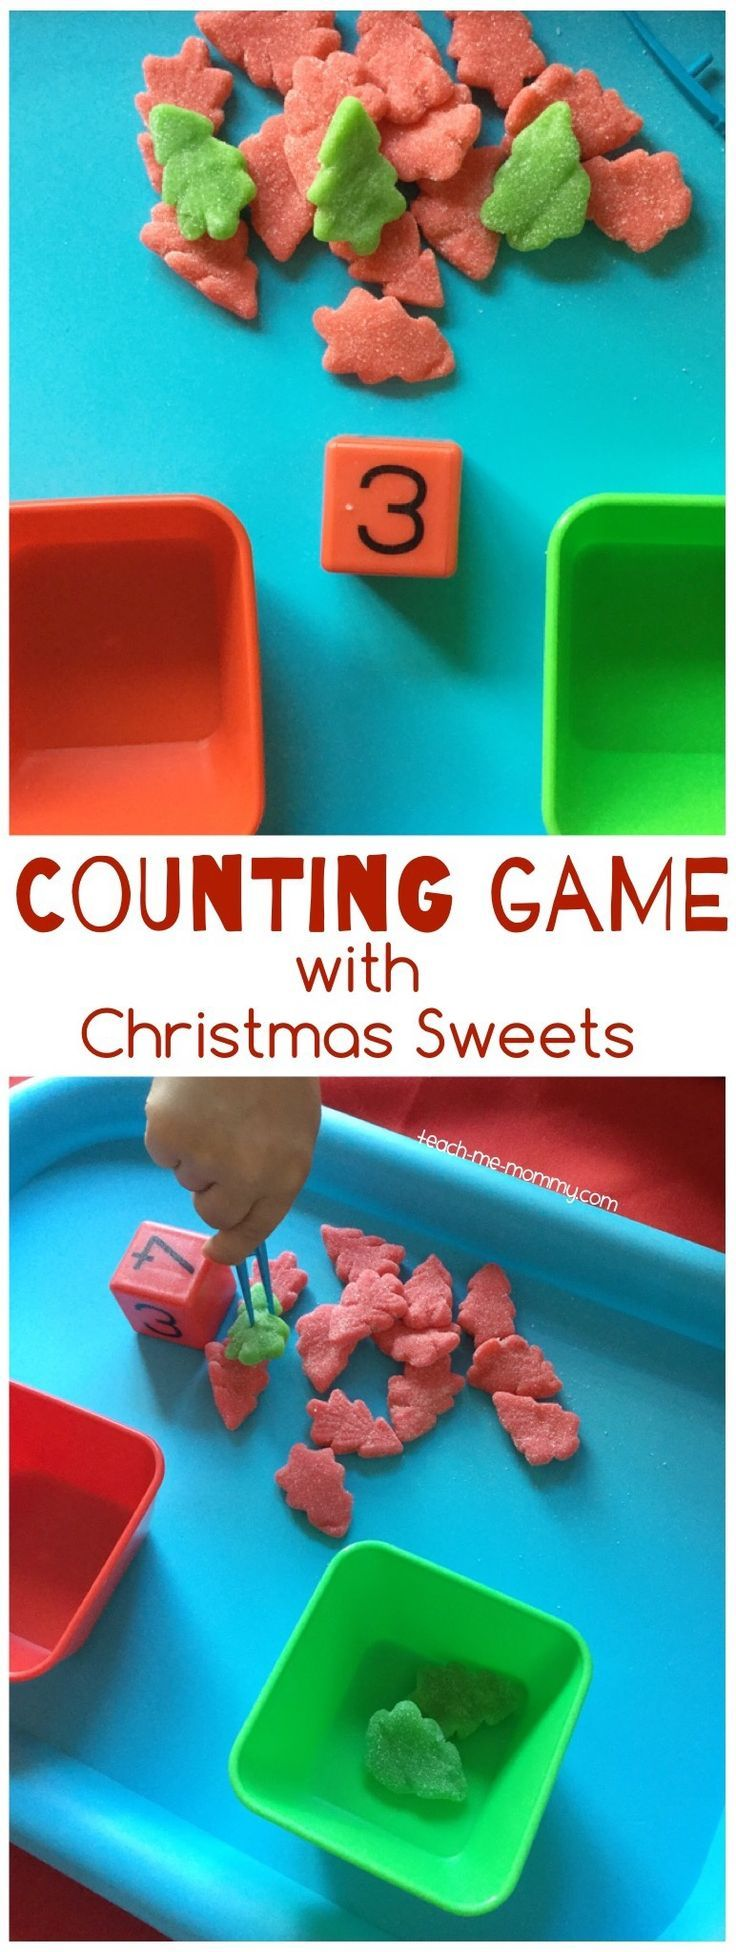 Counting Christmas Sweets Game